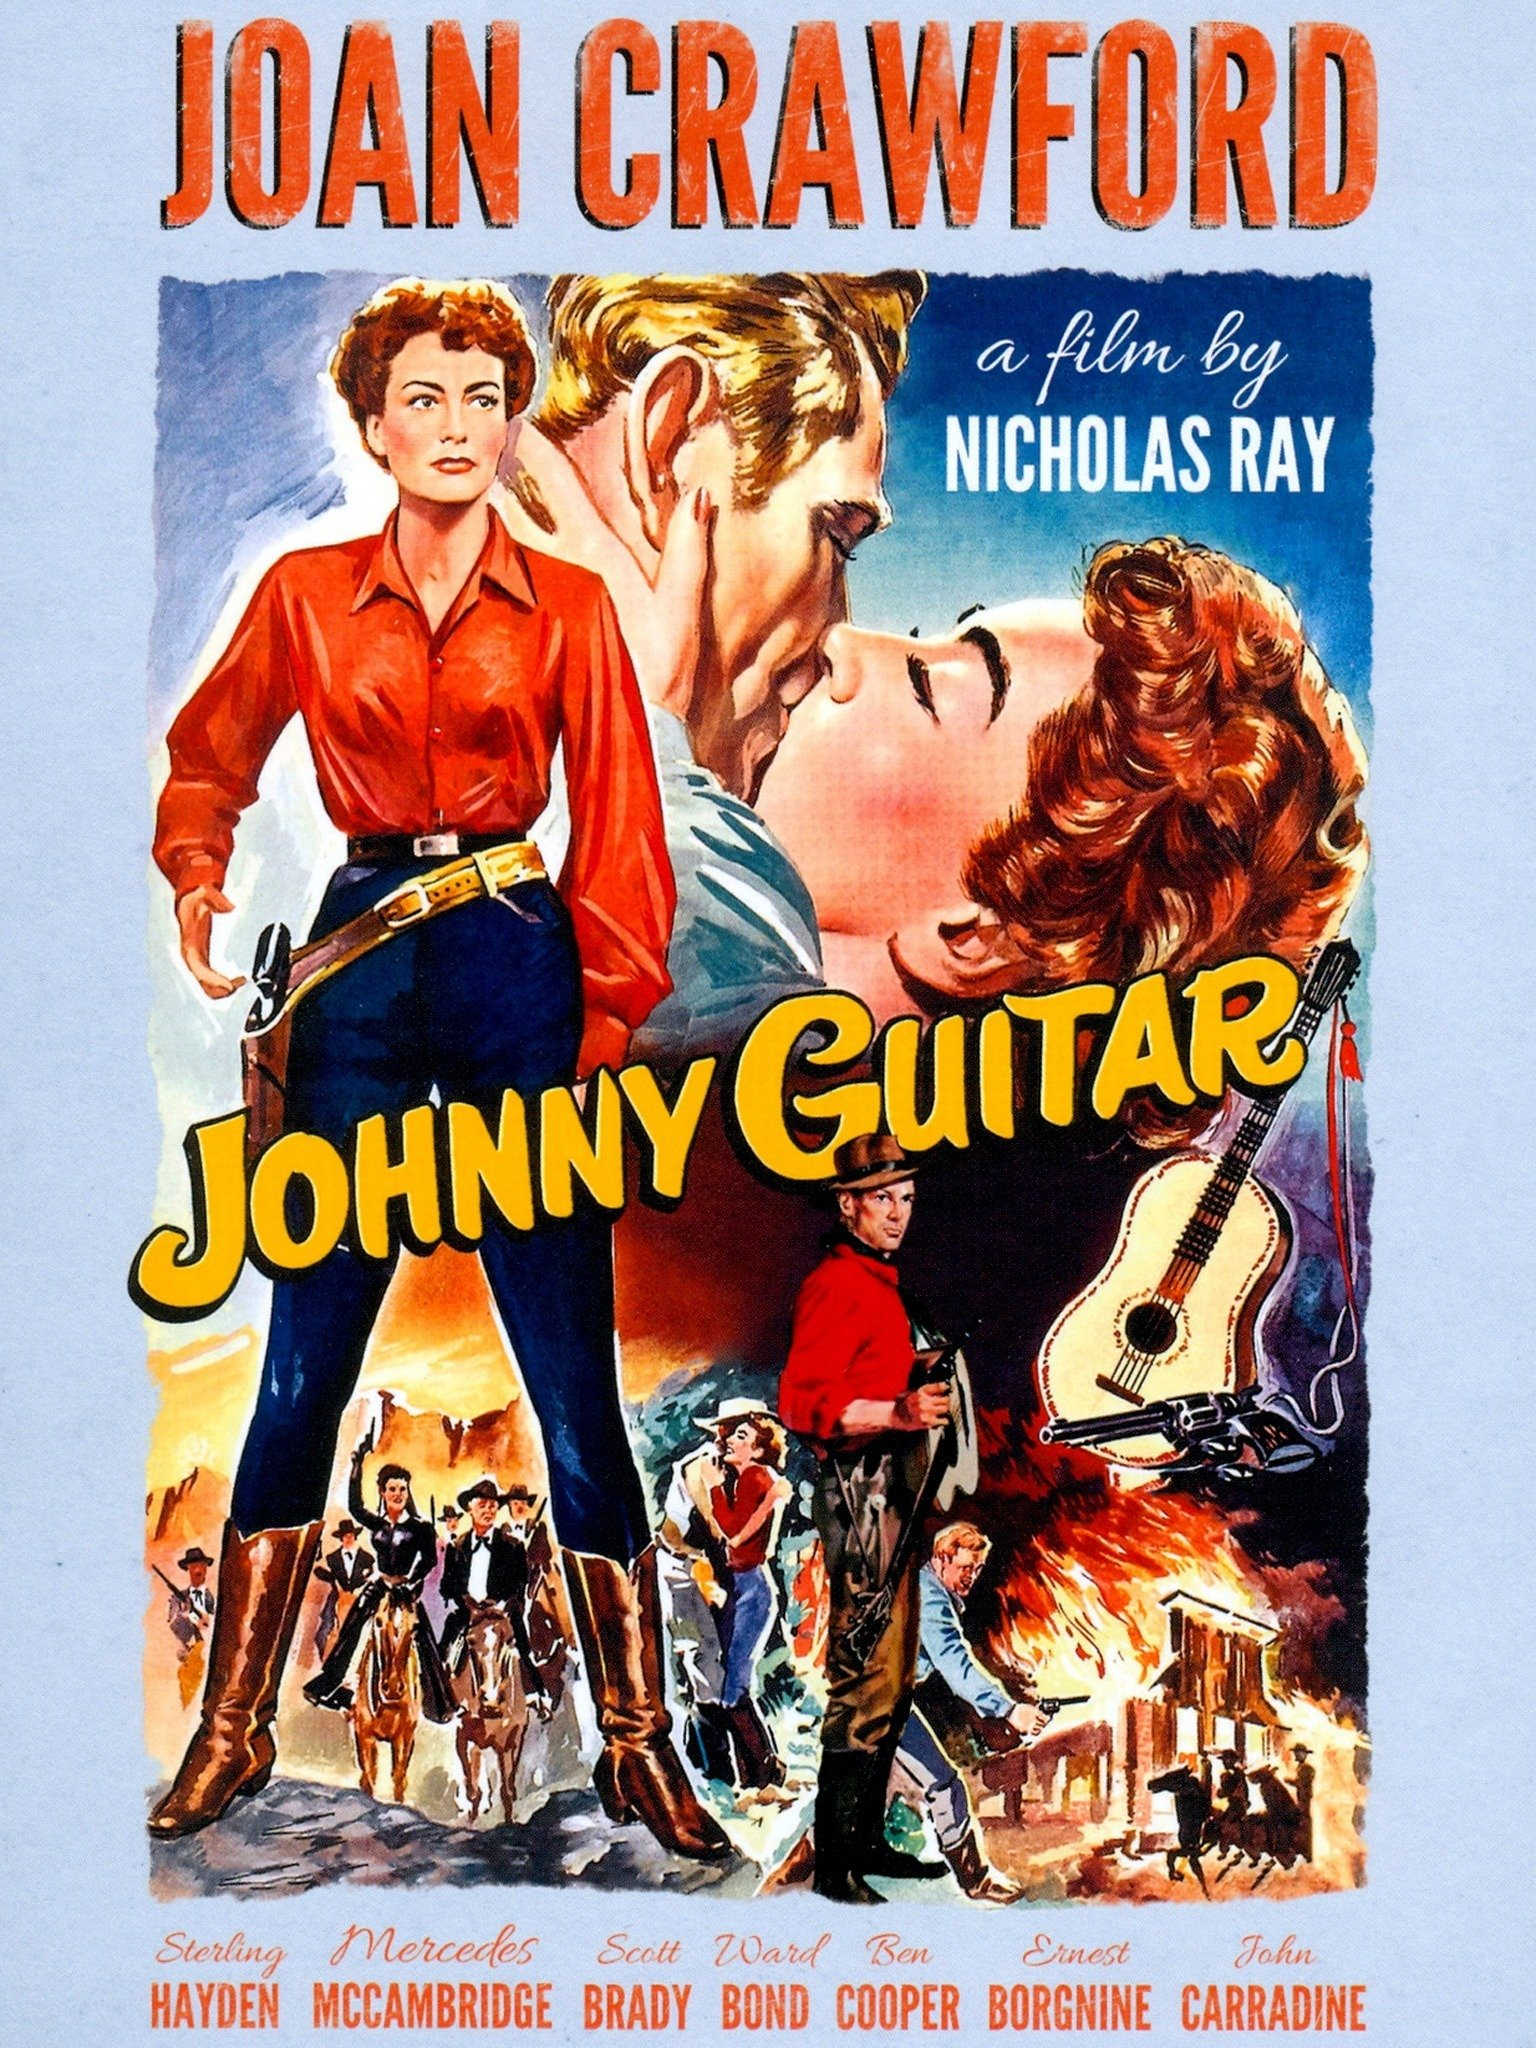 29/09/2016· johnny guitar is the first western i have watched with a strong female protagonist that acts in a dominating and powerful way. Johnny Guitar - Movie Reviews